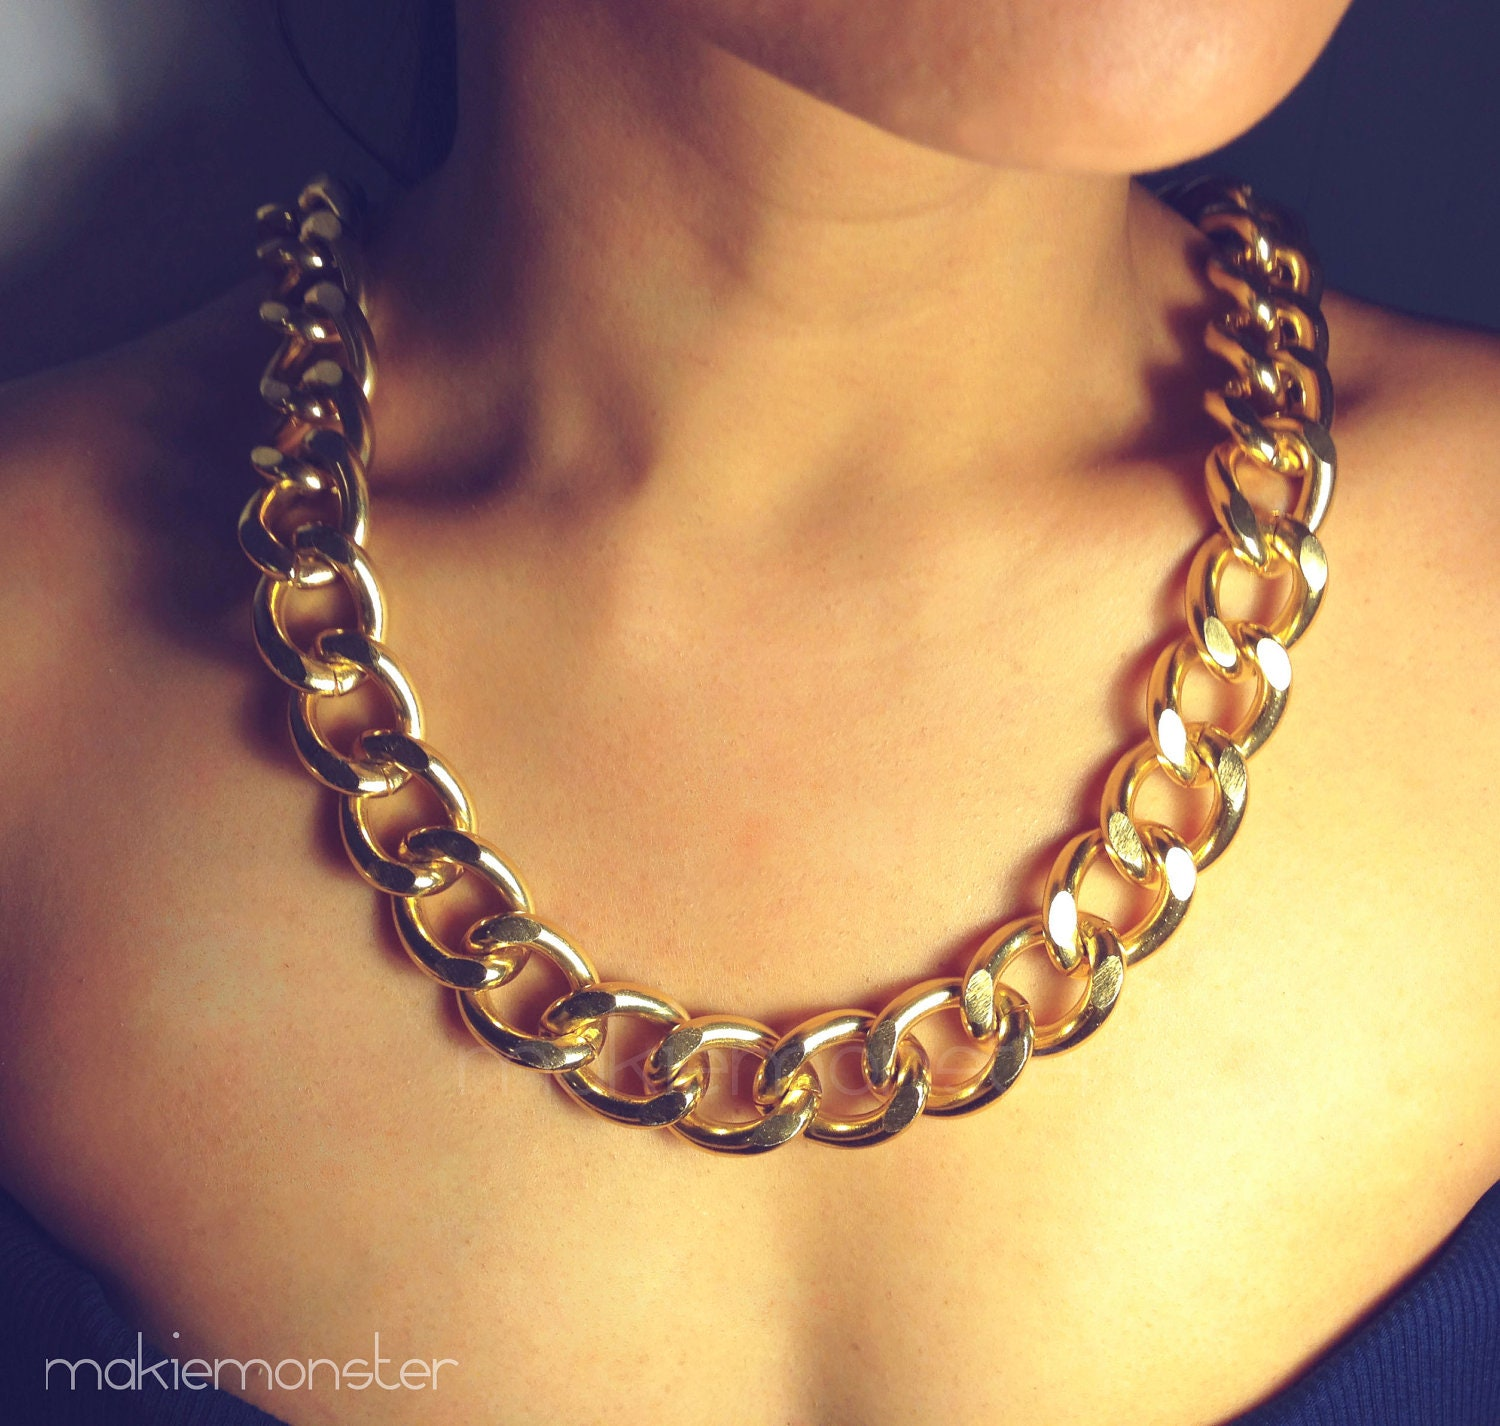 Chunky Necklaces. Make a stylish statement with the newest chunky necklaces. From colorful frontal designs to multi-stone bib silhouettes, these sophisticated stunners are sure to give any outfit a bold boost.